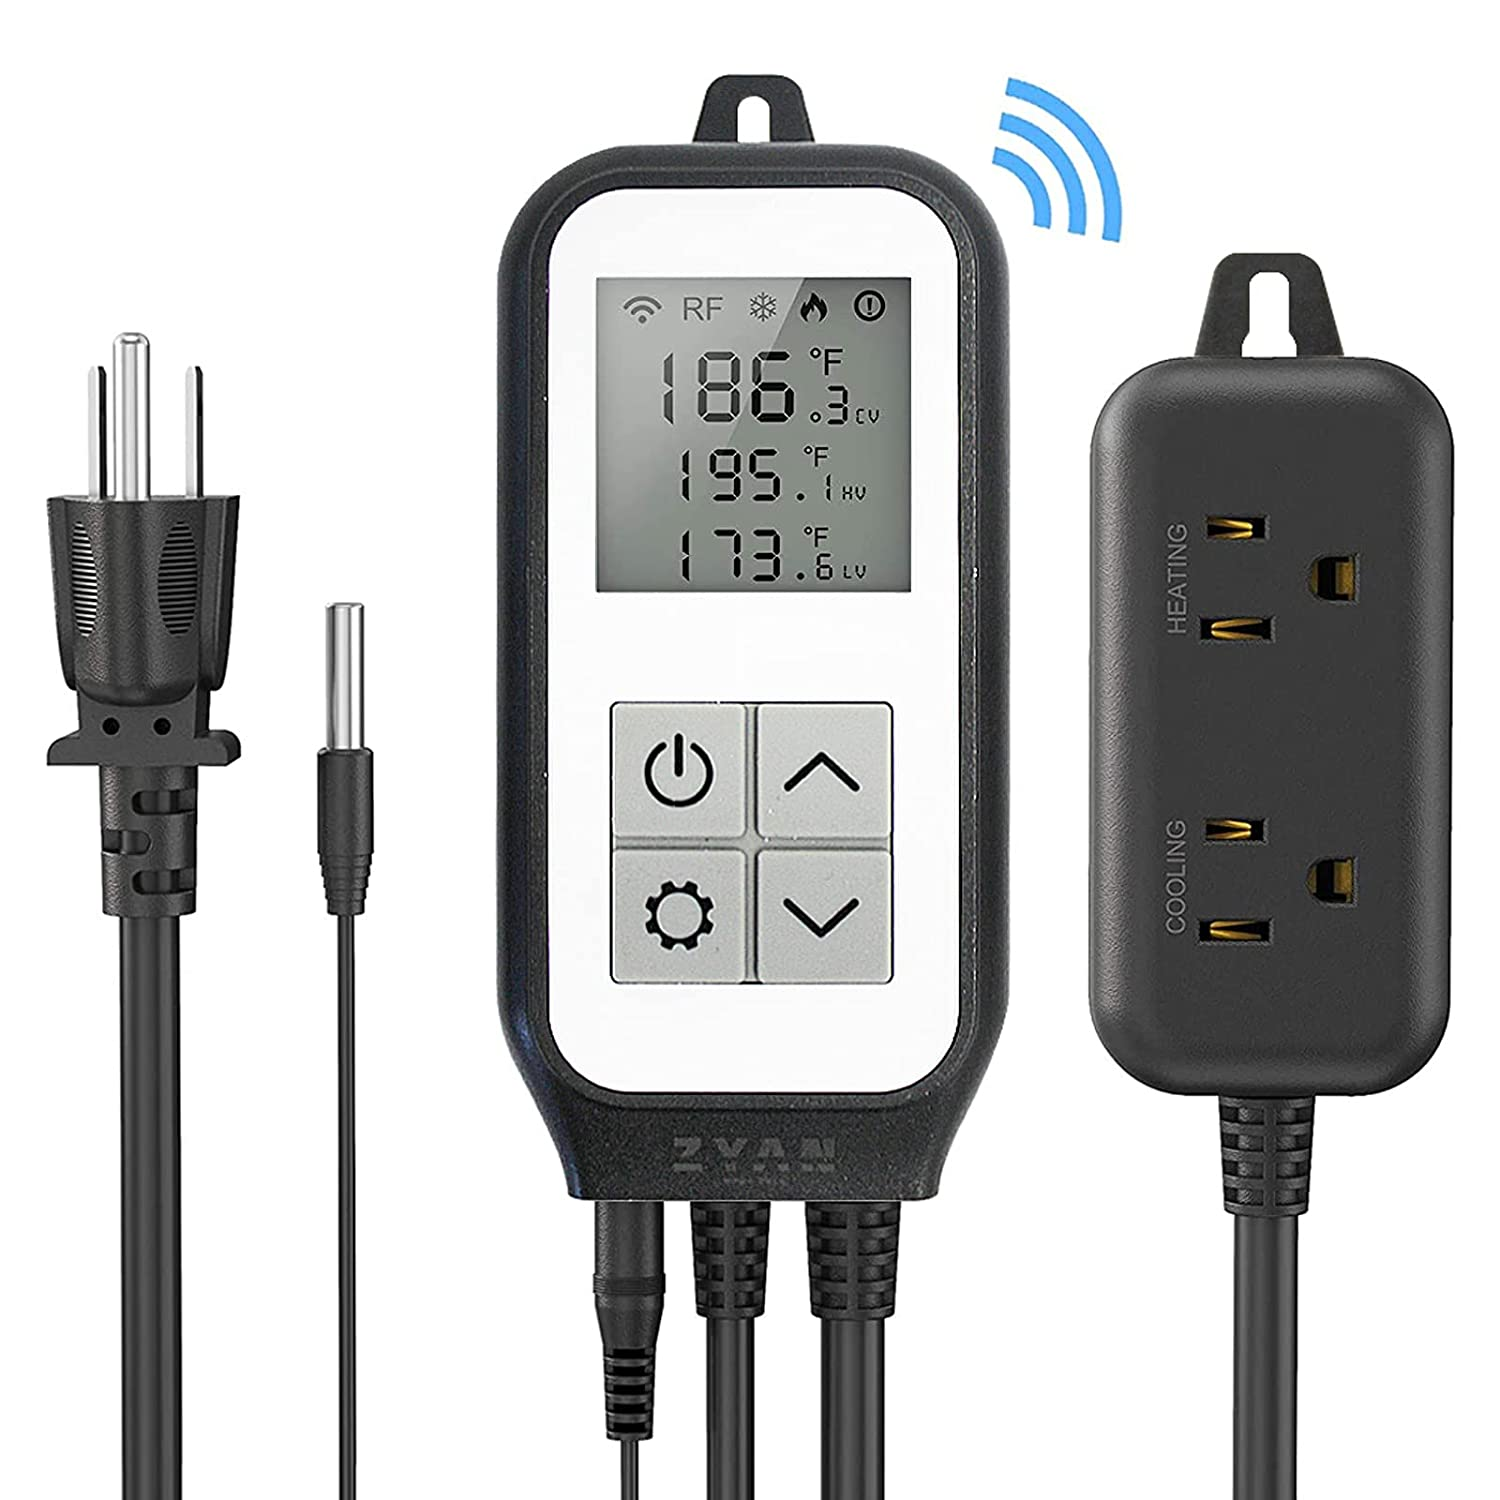 ZYAN WiFi Digital Temperature Controller, Smart Thermostat Controller Outlet Plug in Heating and Cooling Greenhouse Thermostat Wireless Remote Control by APP for Reptile Breeding Homebrew Terrarium